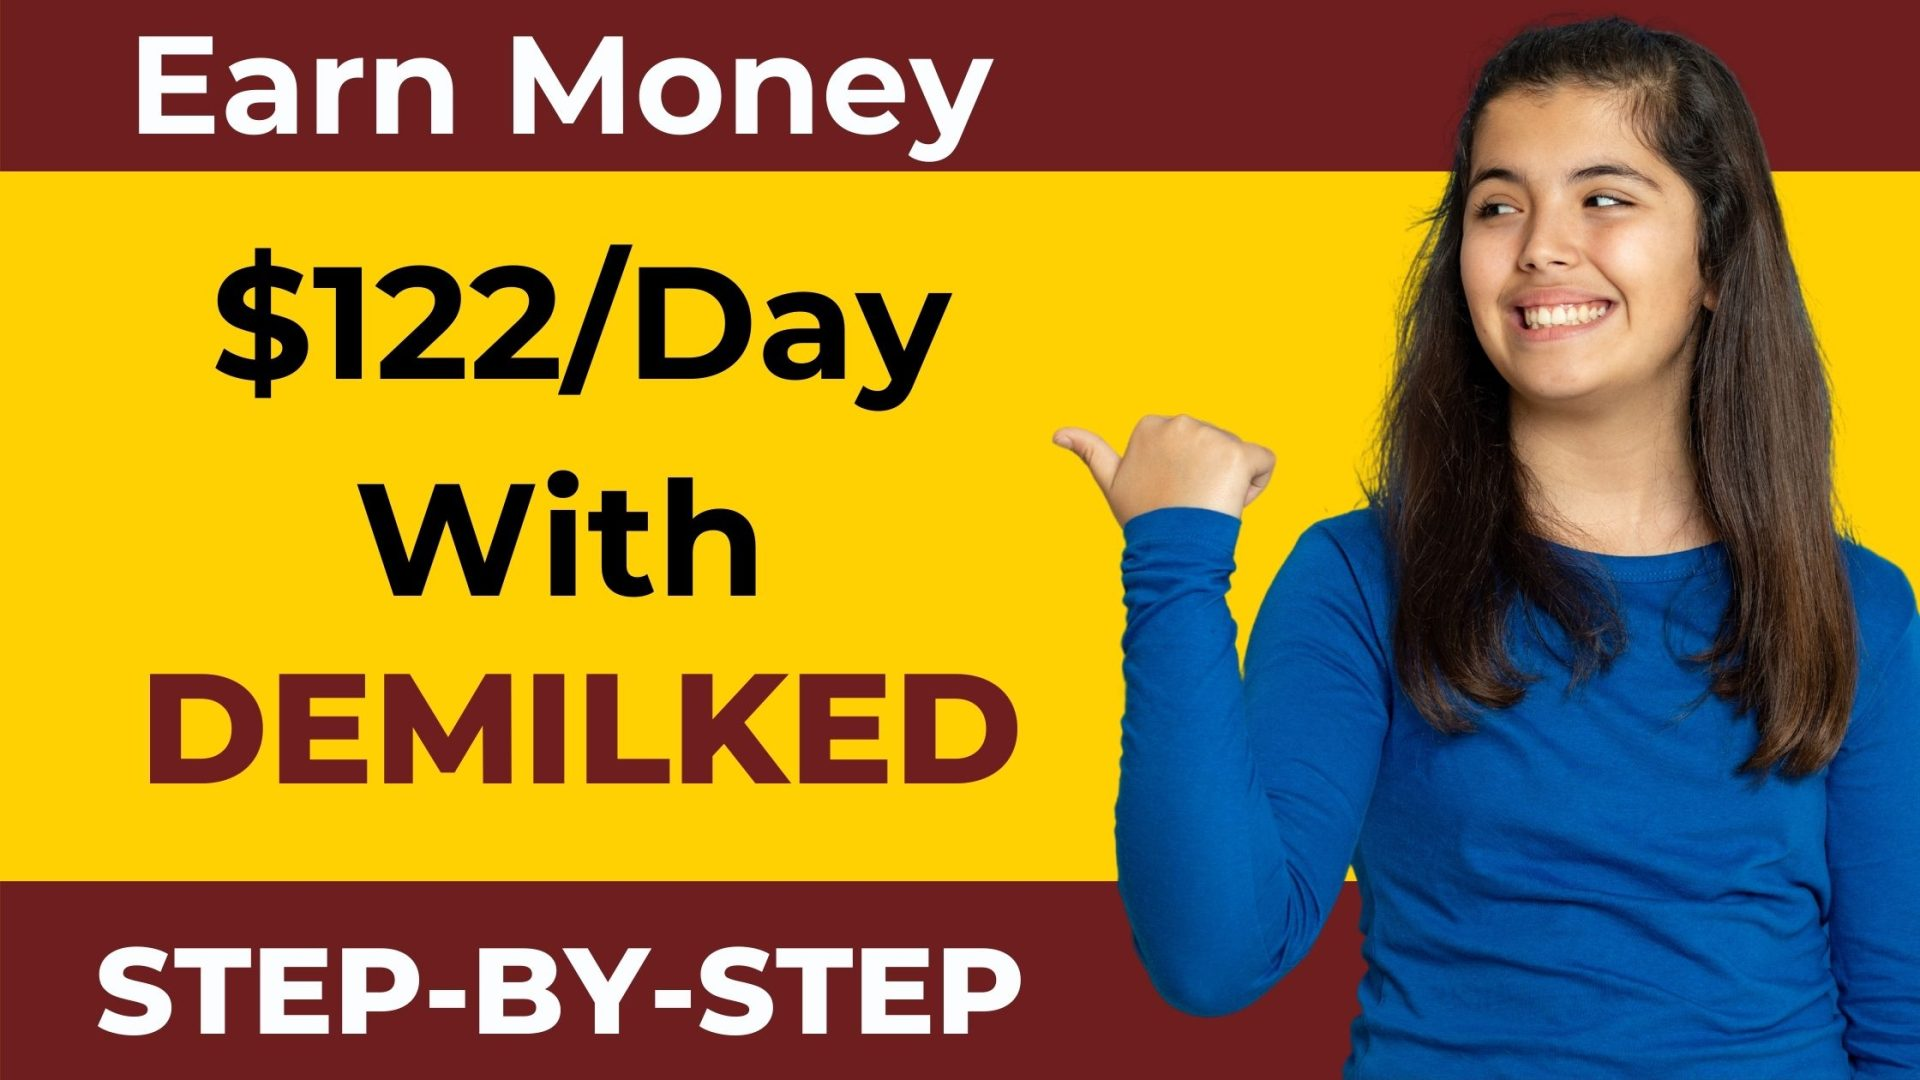 DEMILKED The Best Platform To Earn $122 Per Day💰💰💰 How?